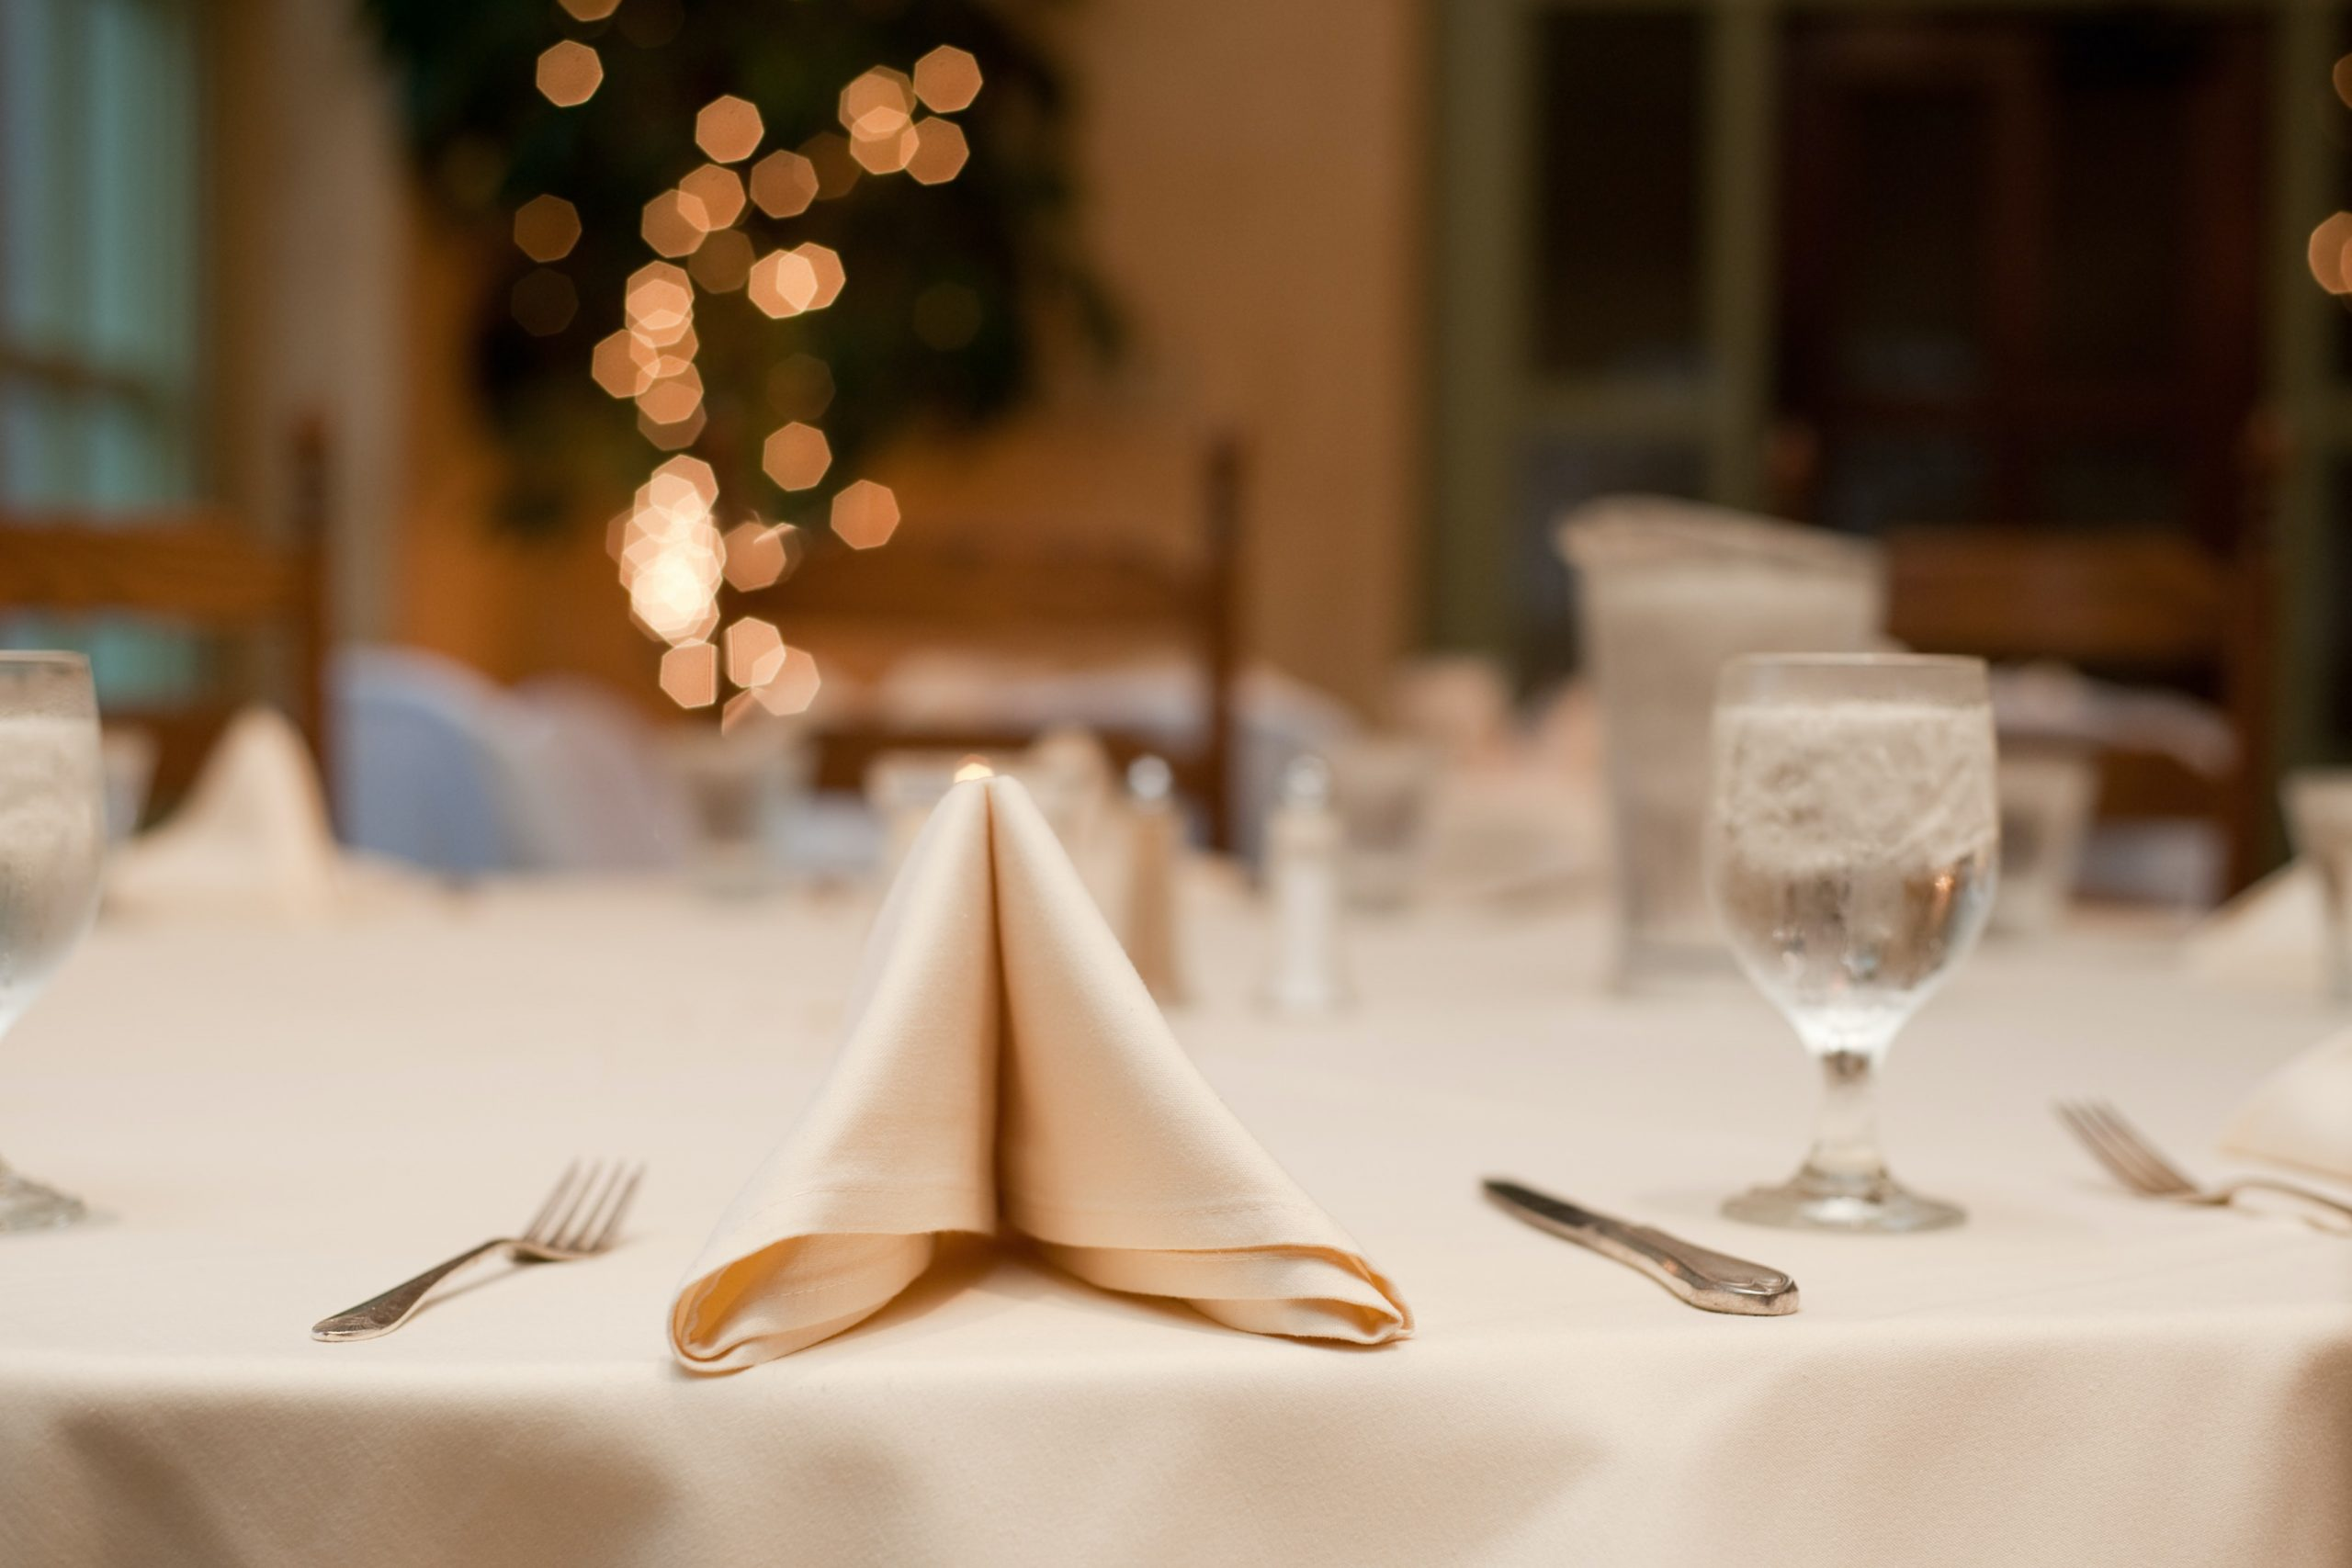 Banquet table set for event on ACECNJ-The-American-Council-of-Engineering-Companies-Awards-Banquet-Page